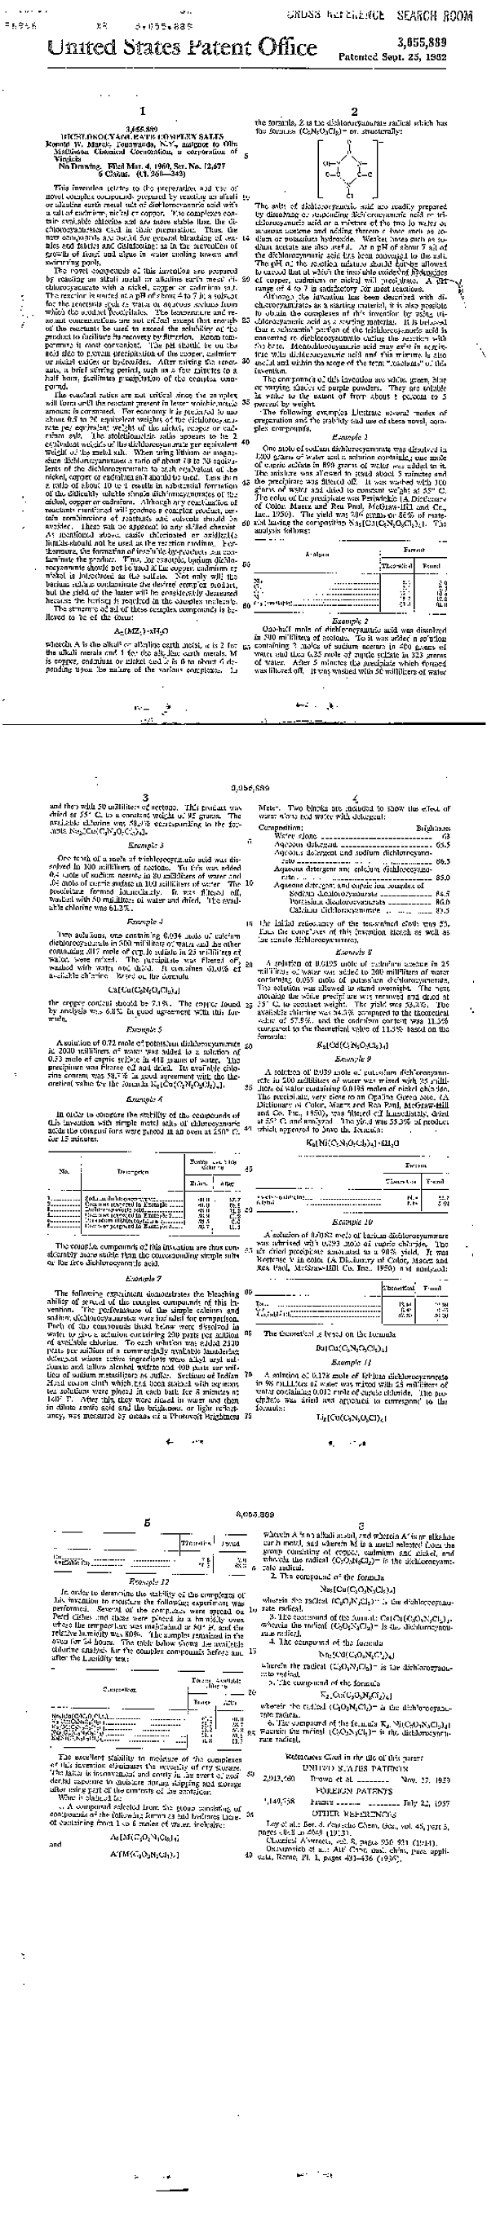 United States Patent O Act Search Acah Search Meme On Sizzle